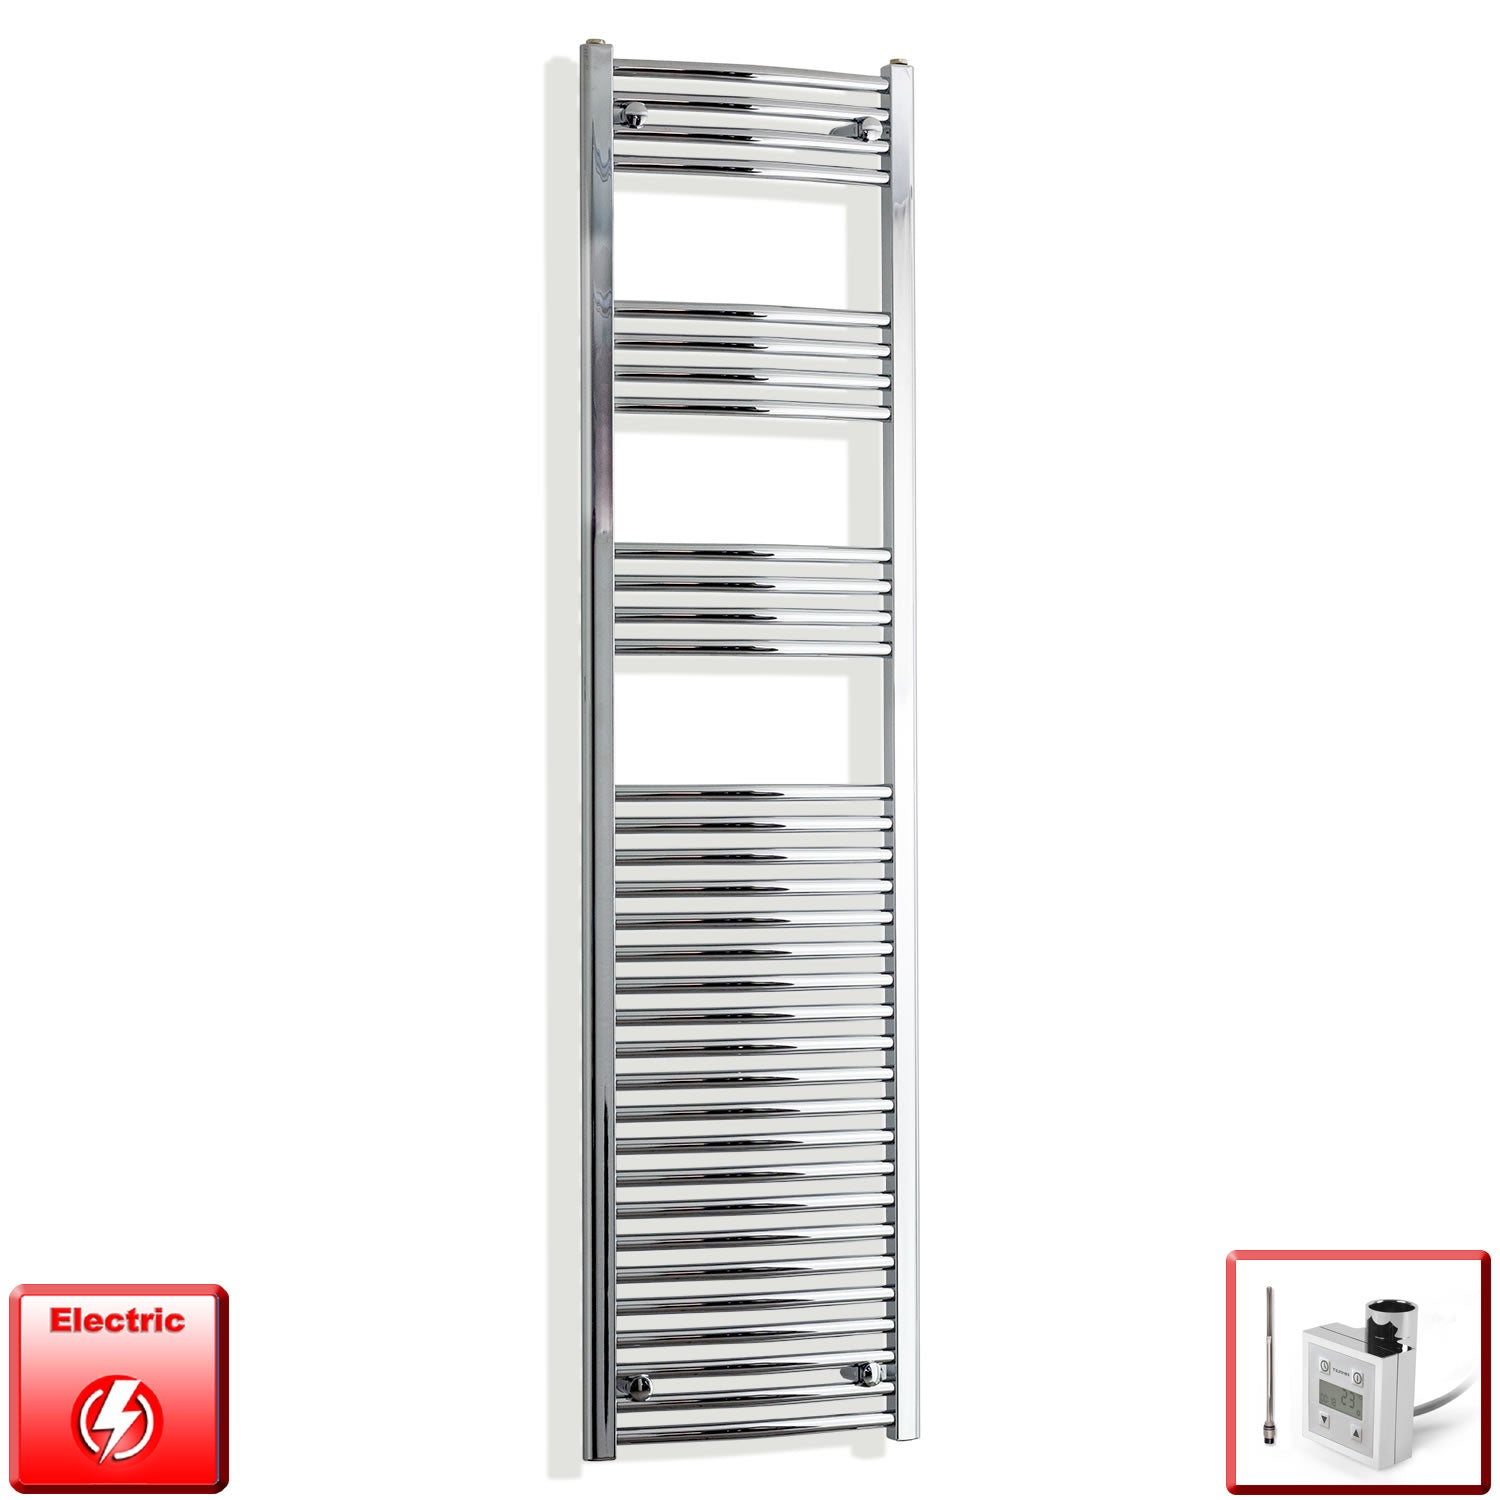 450mm Wide 1800mm High Pre-Filled Chrome Electric Towel Rail Radiator With Thermostatic KTX3 Element